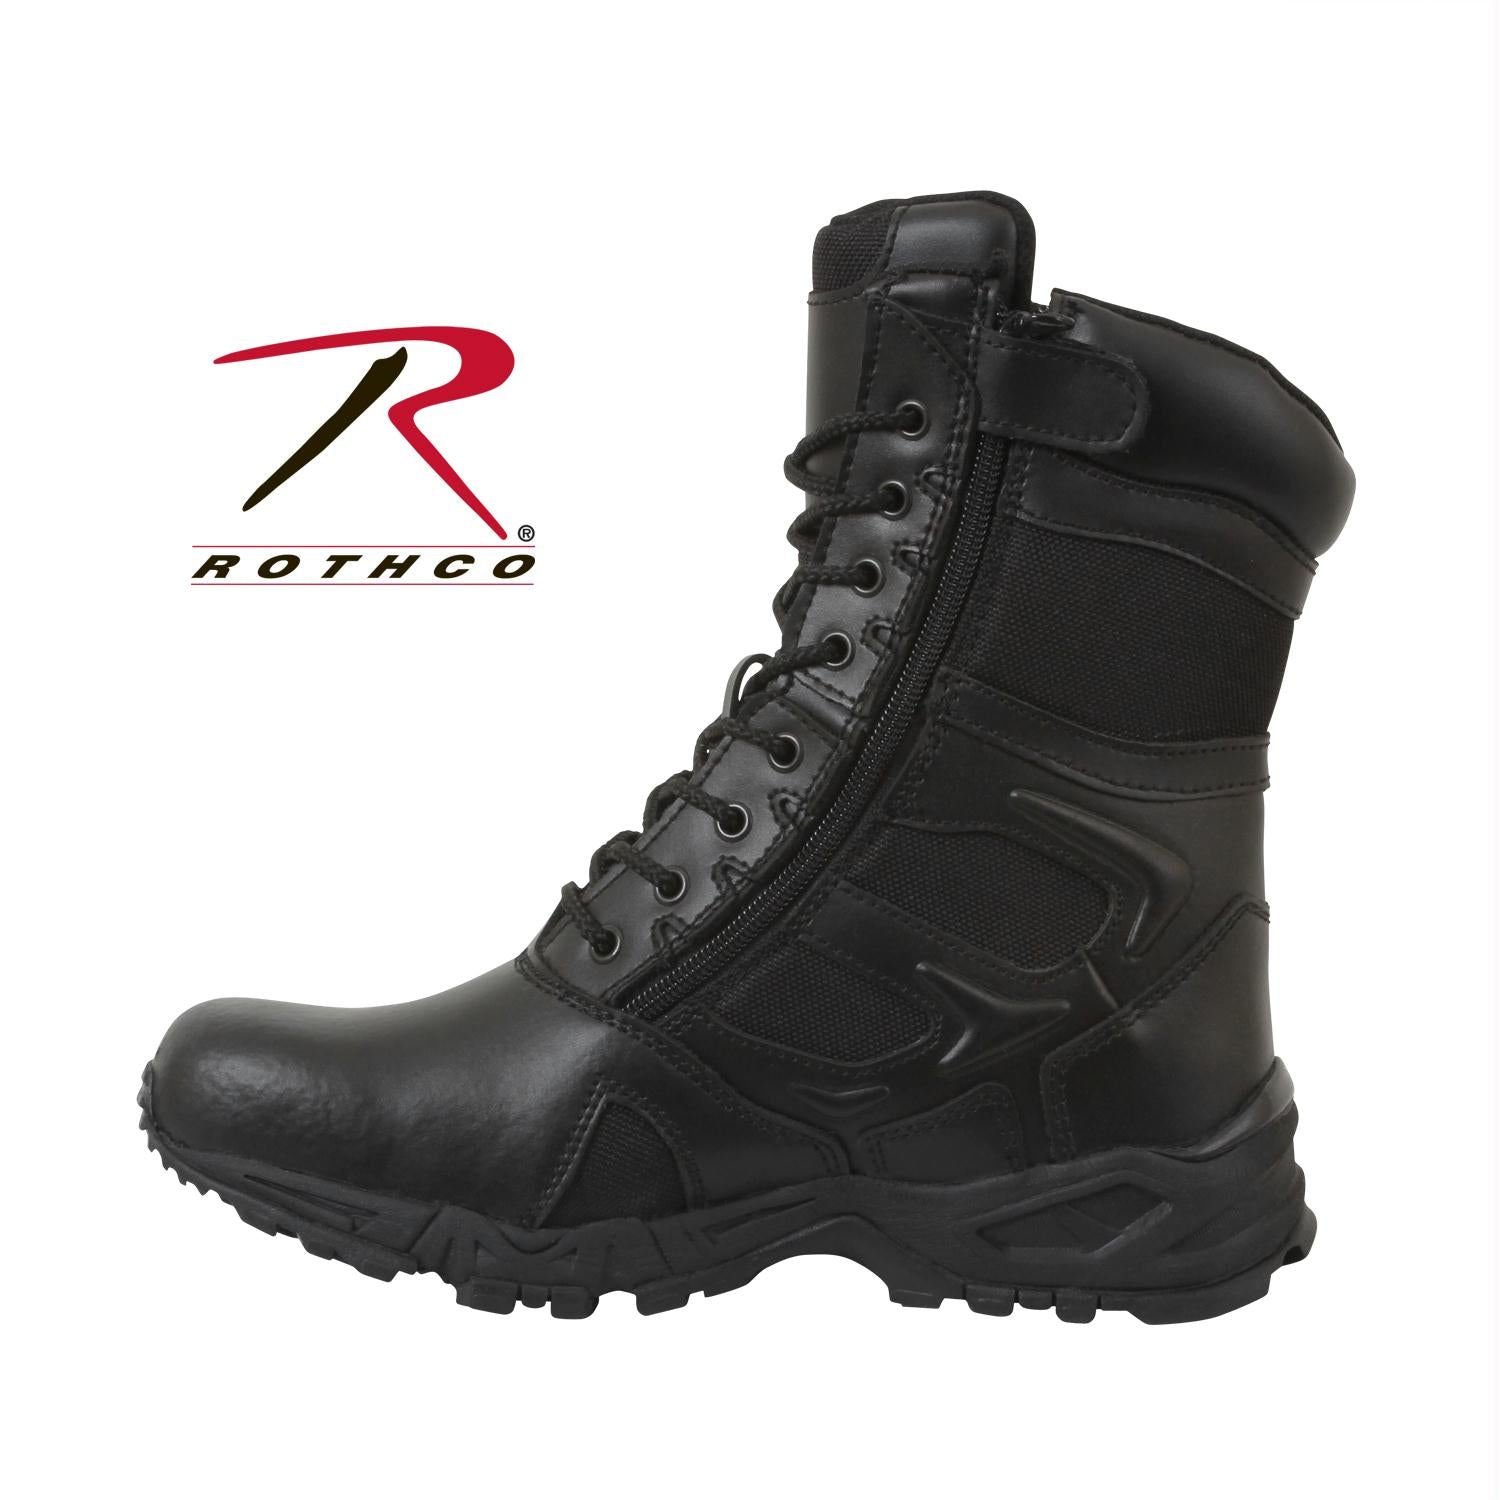 Rothco Forced Entry Deployment Boot With Side Zipper - 5 / Regular